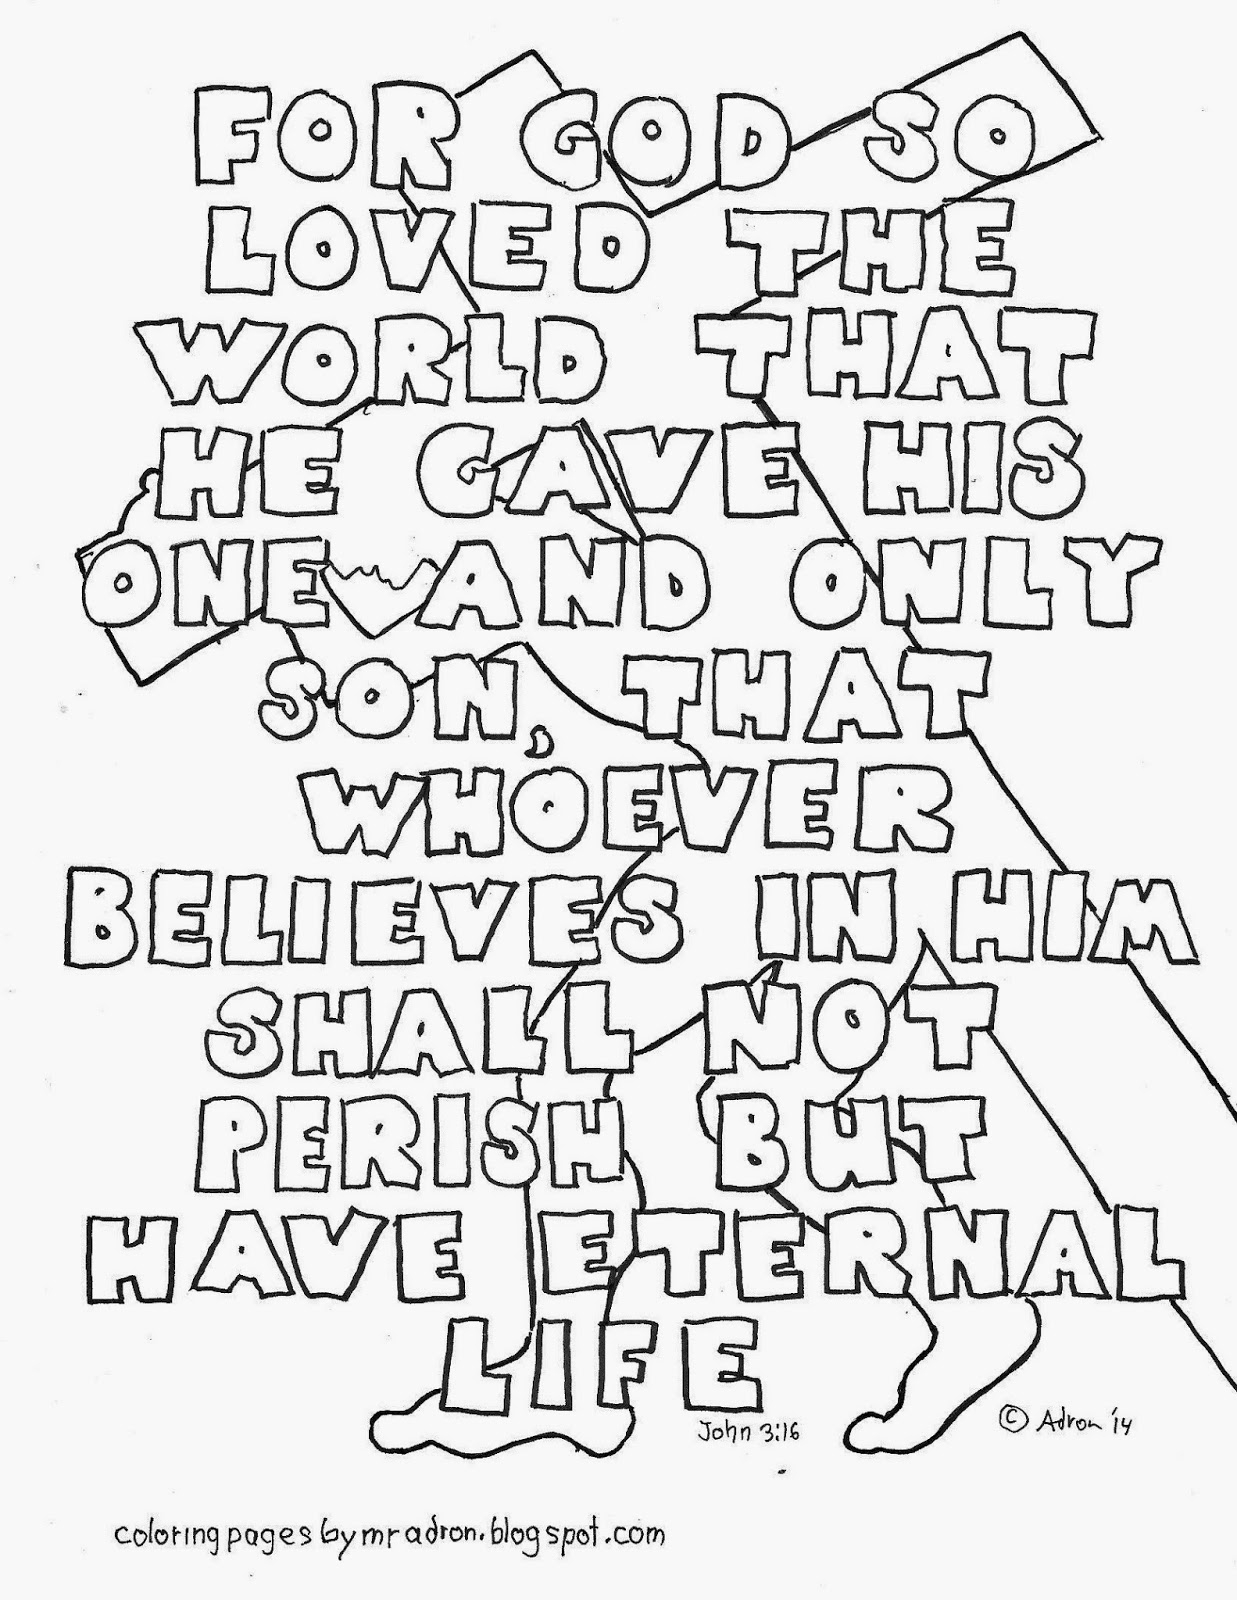 john 3 16 coloring page - john 316 coloring page with all words